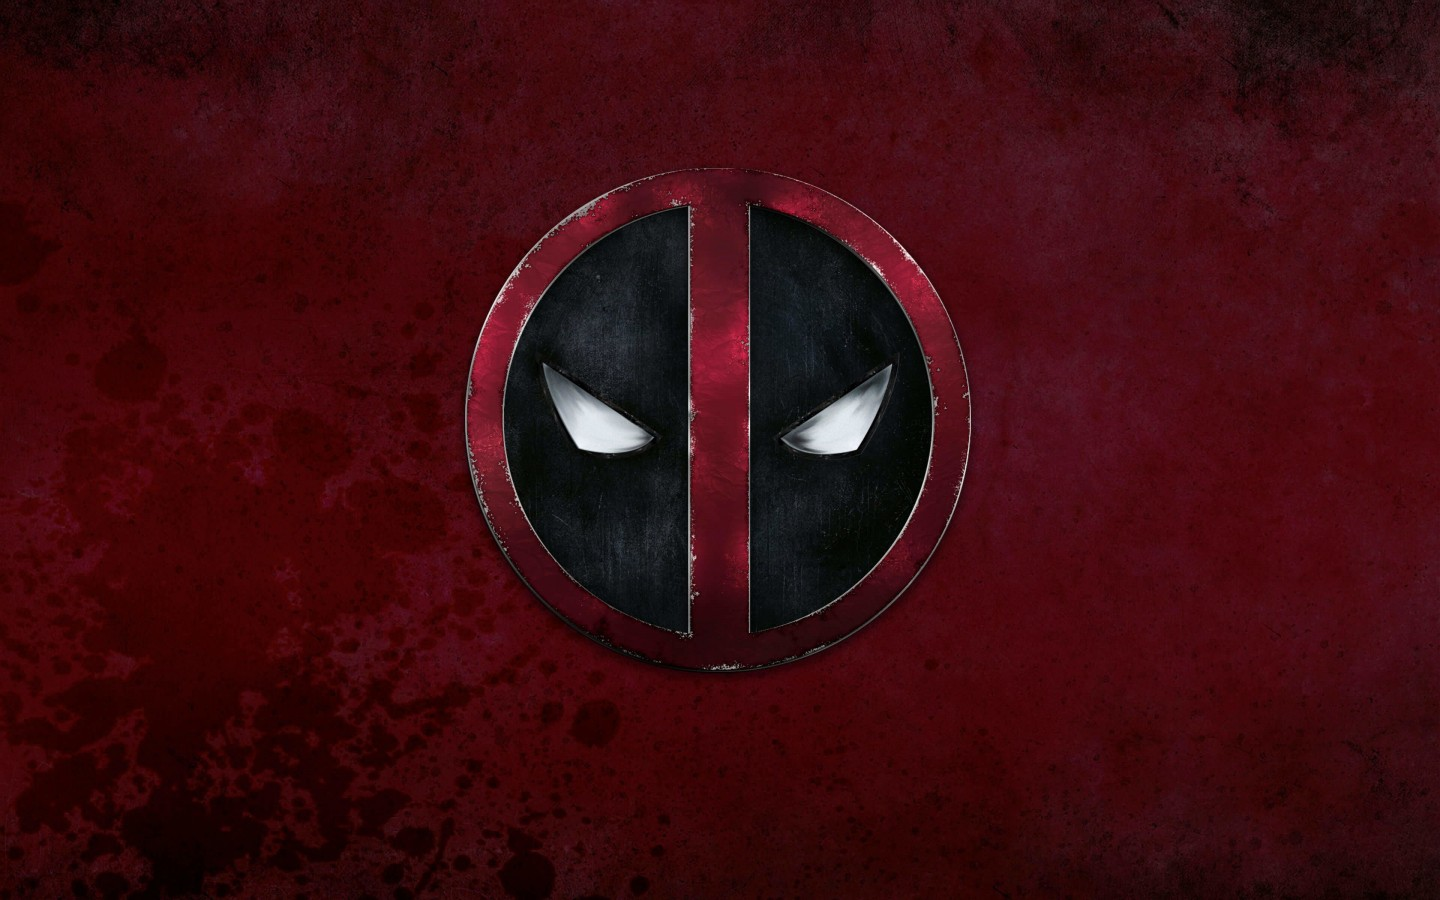 Deadpool Logo Wallpaper for Desktop 1440x900